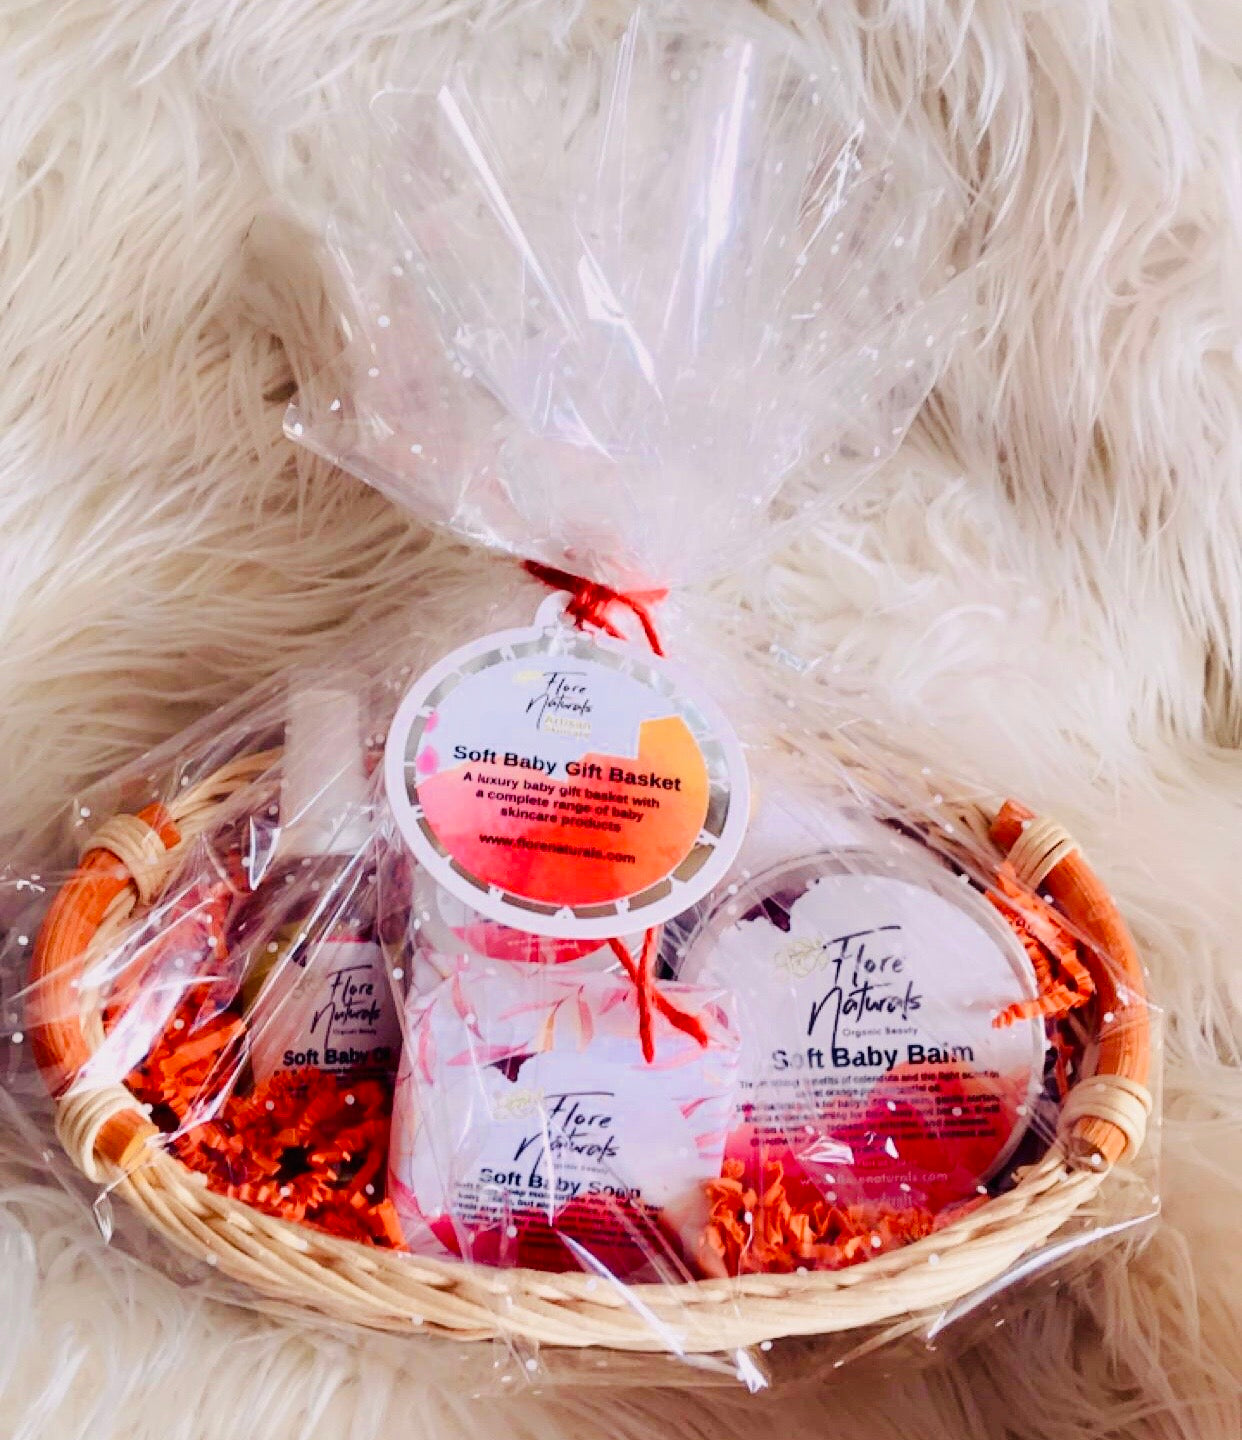 Soft Baby Gift Basket - Sweet Orange